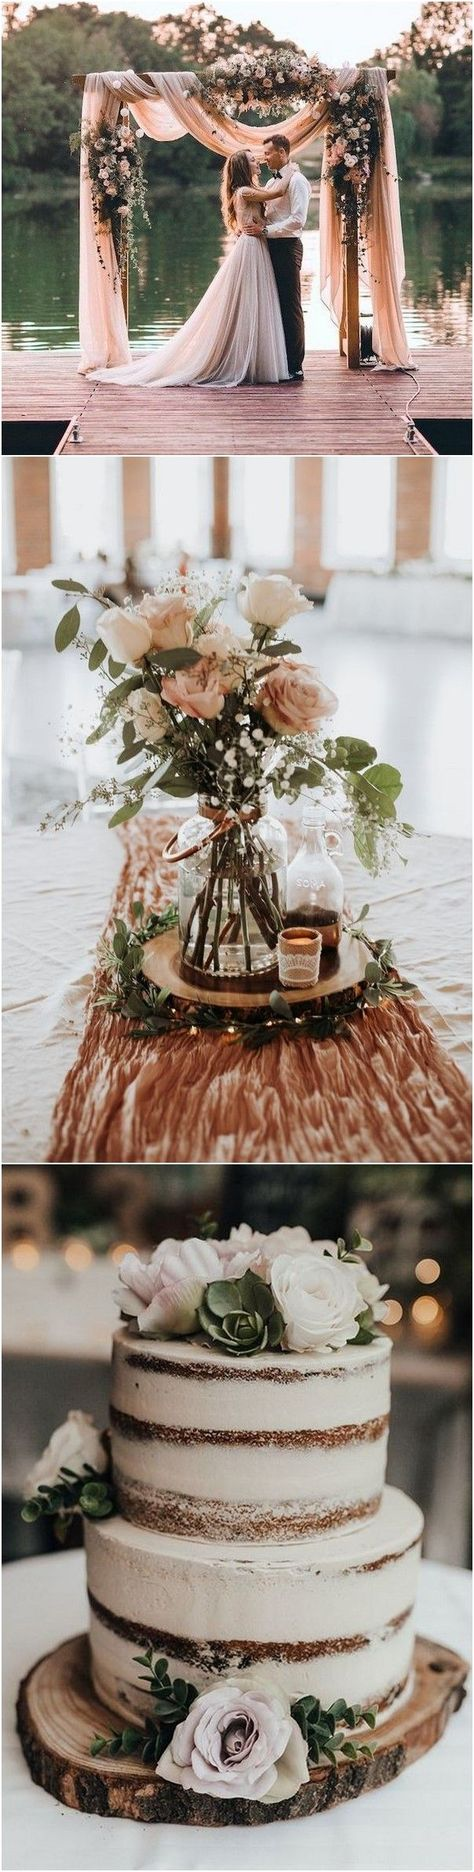 dusty rose and sage green wedding color ideas #wedding #weddings #weddingcolors #weddingideas #pinkweddings #greenweddings #hmp